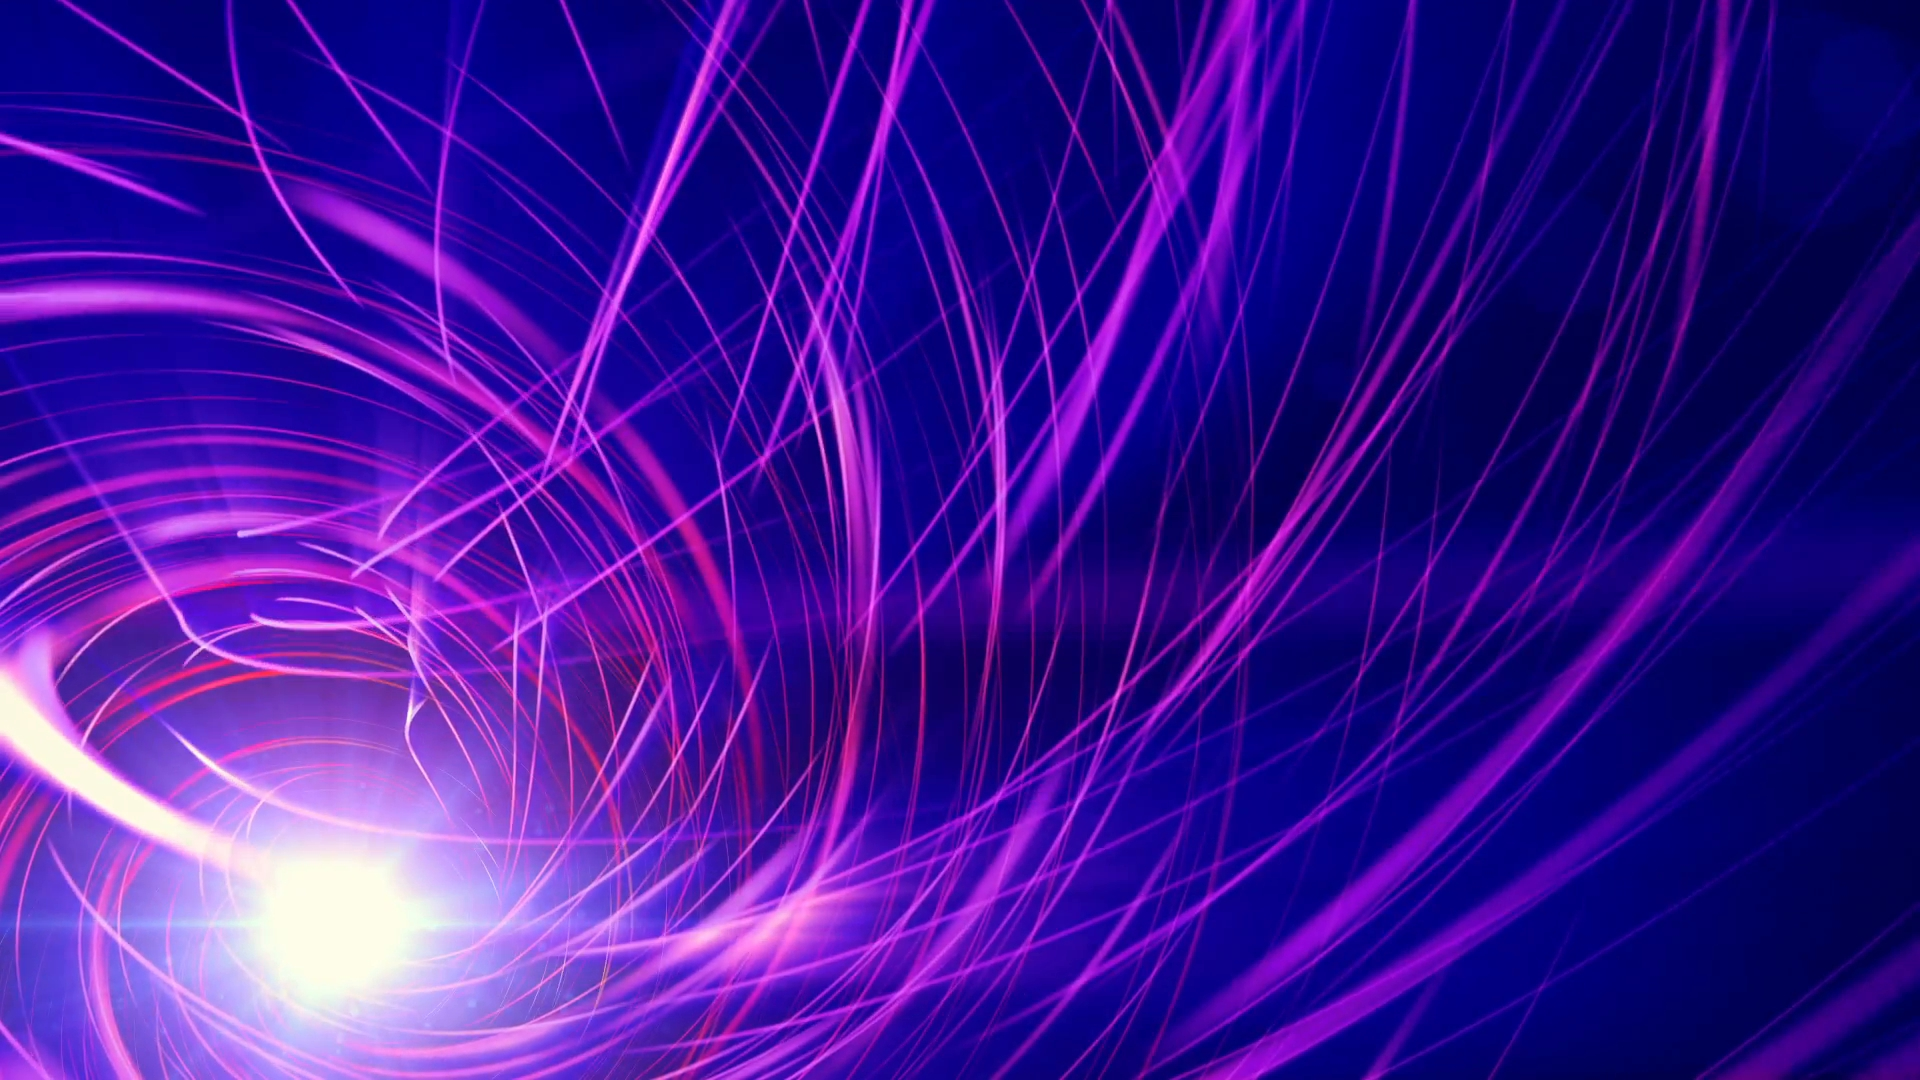 blue motion background with purple spiral lines, loop motion